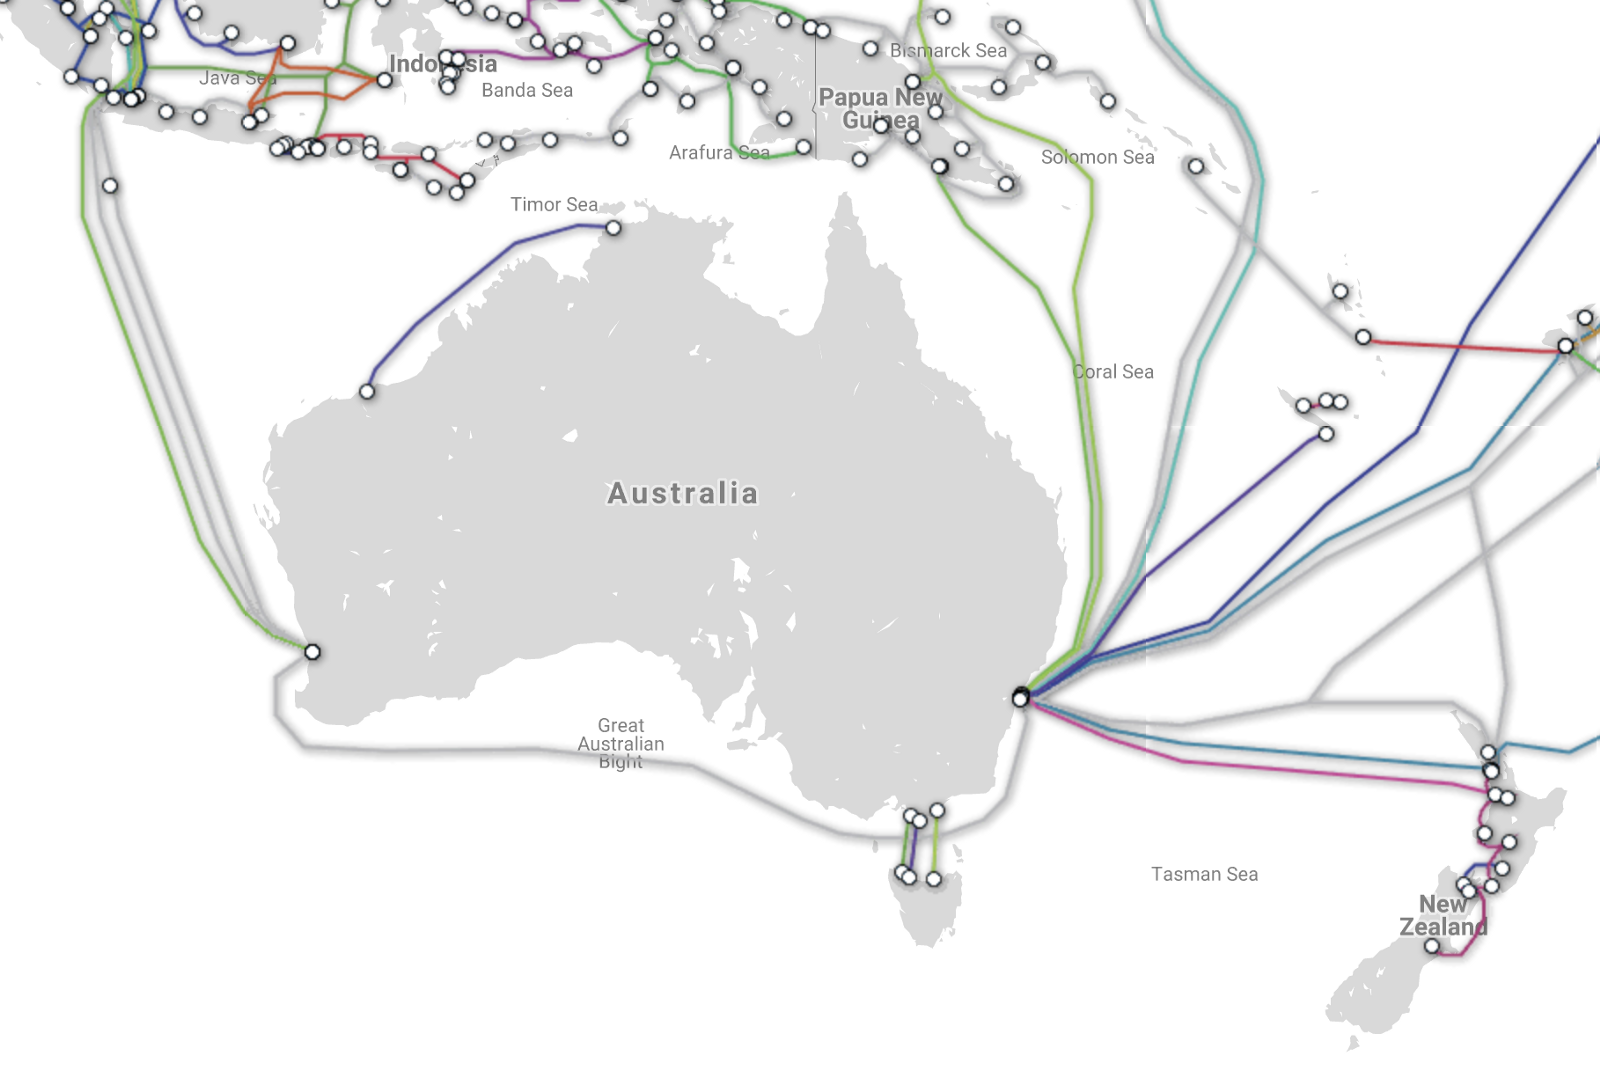 Watching The World Cup On Nbn Bryan Jordan Medium Home Wiring Diagram This Is How Australia Receives Their Internet Today Though Huge Underwater Cables Connecting Country